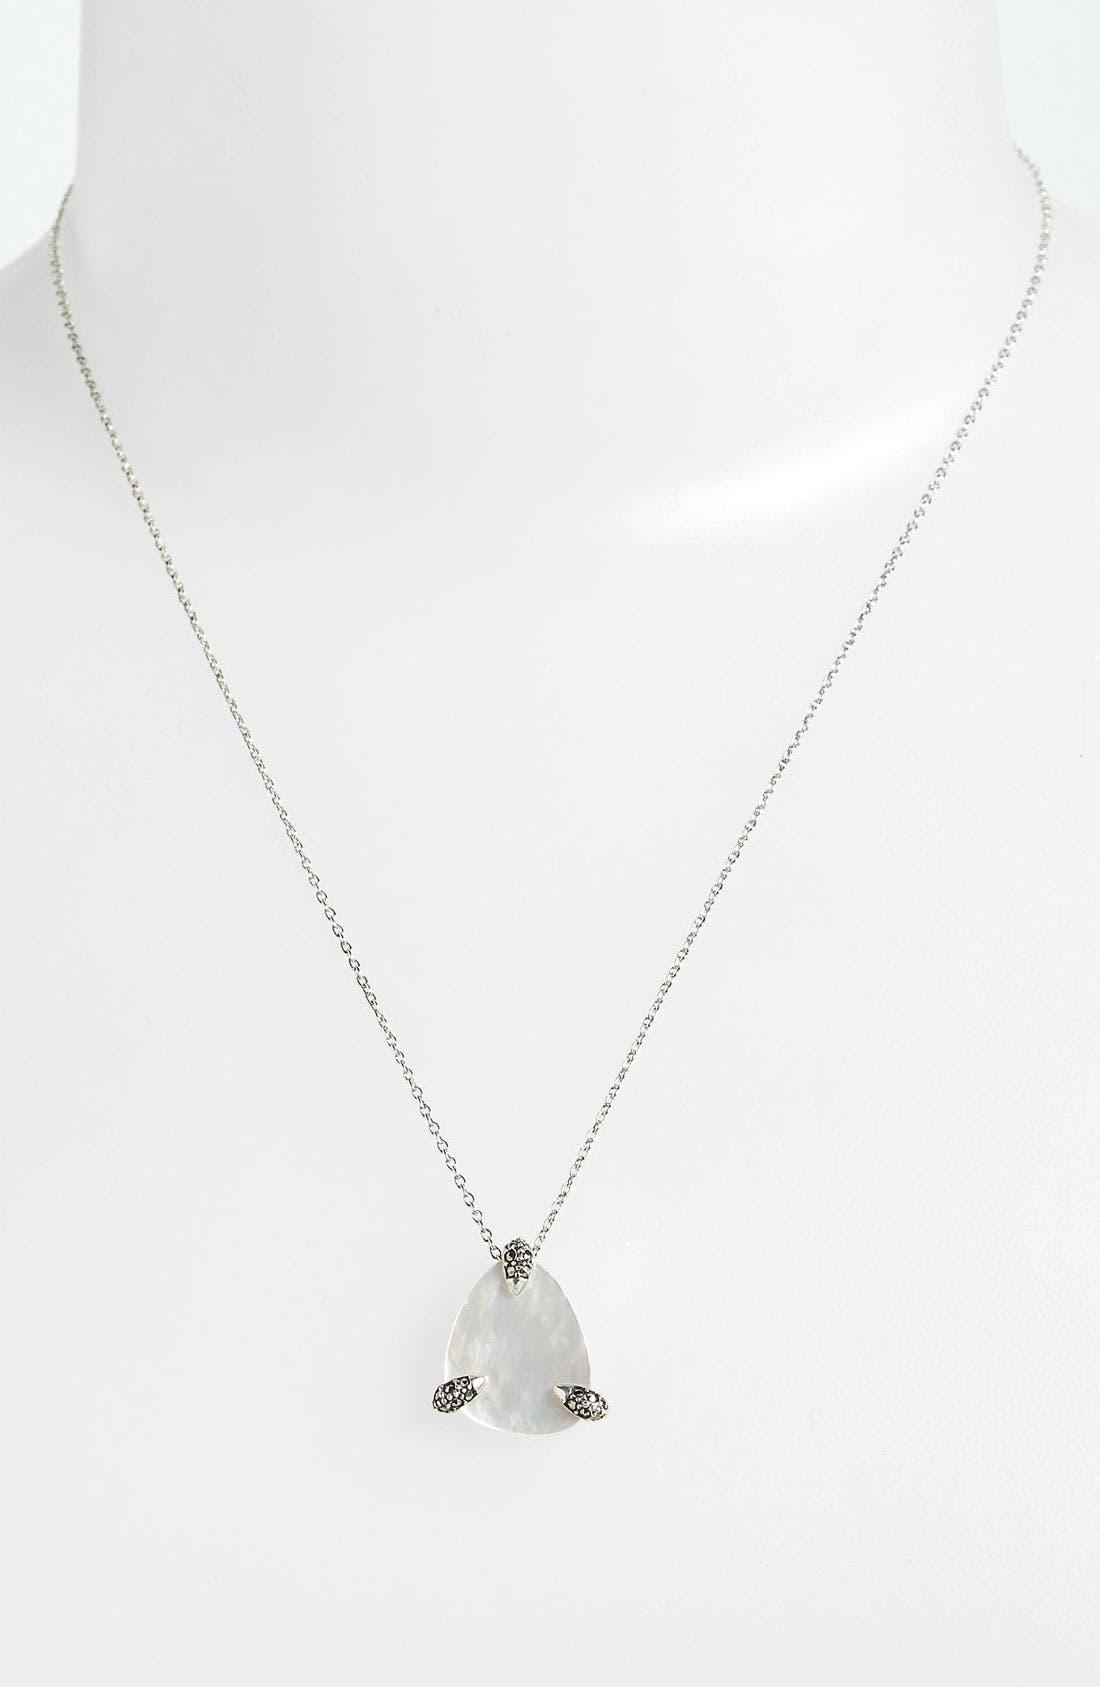 Main Image - Judith Jack Small Pendant Necklace